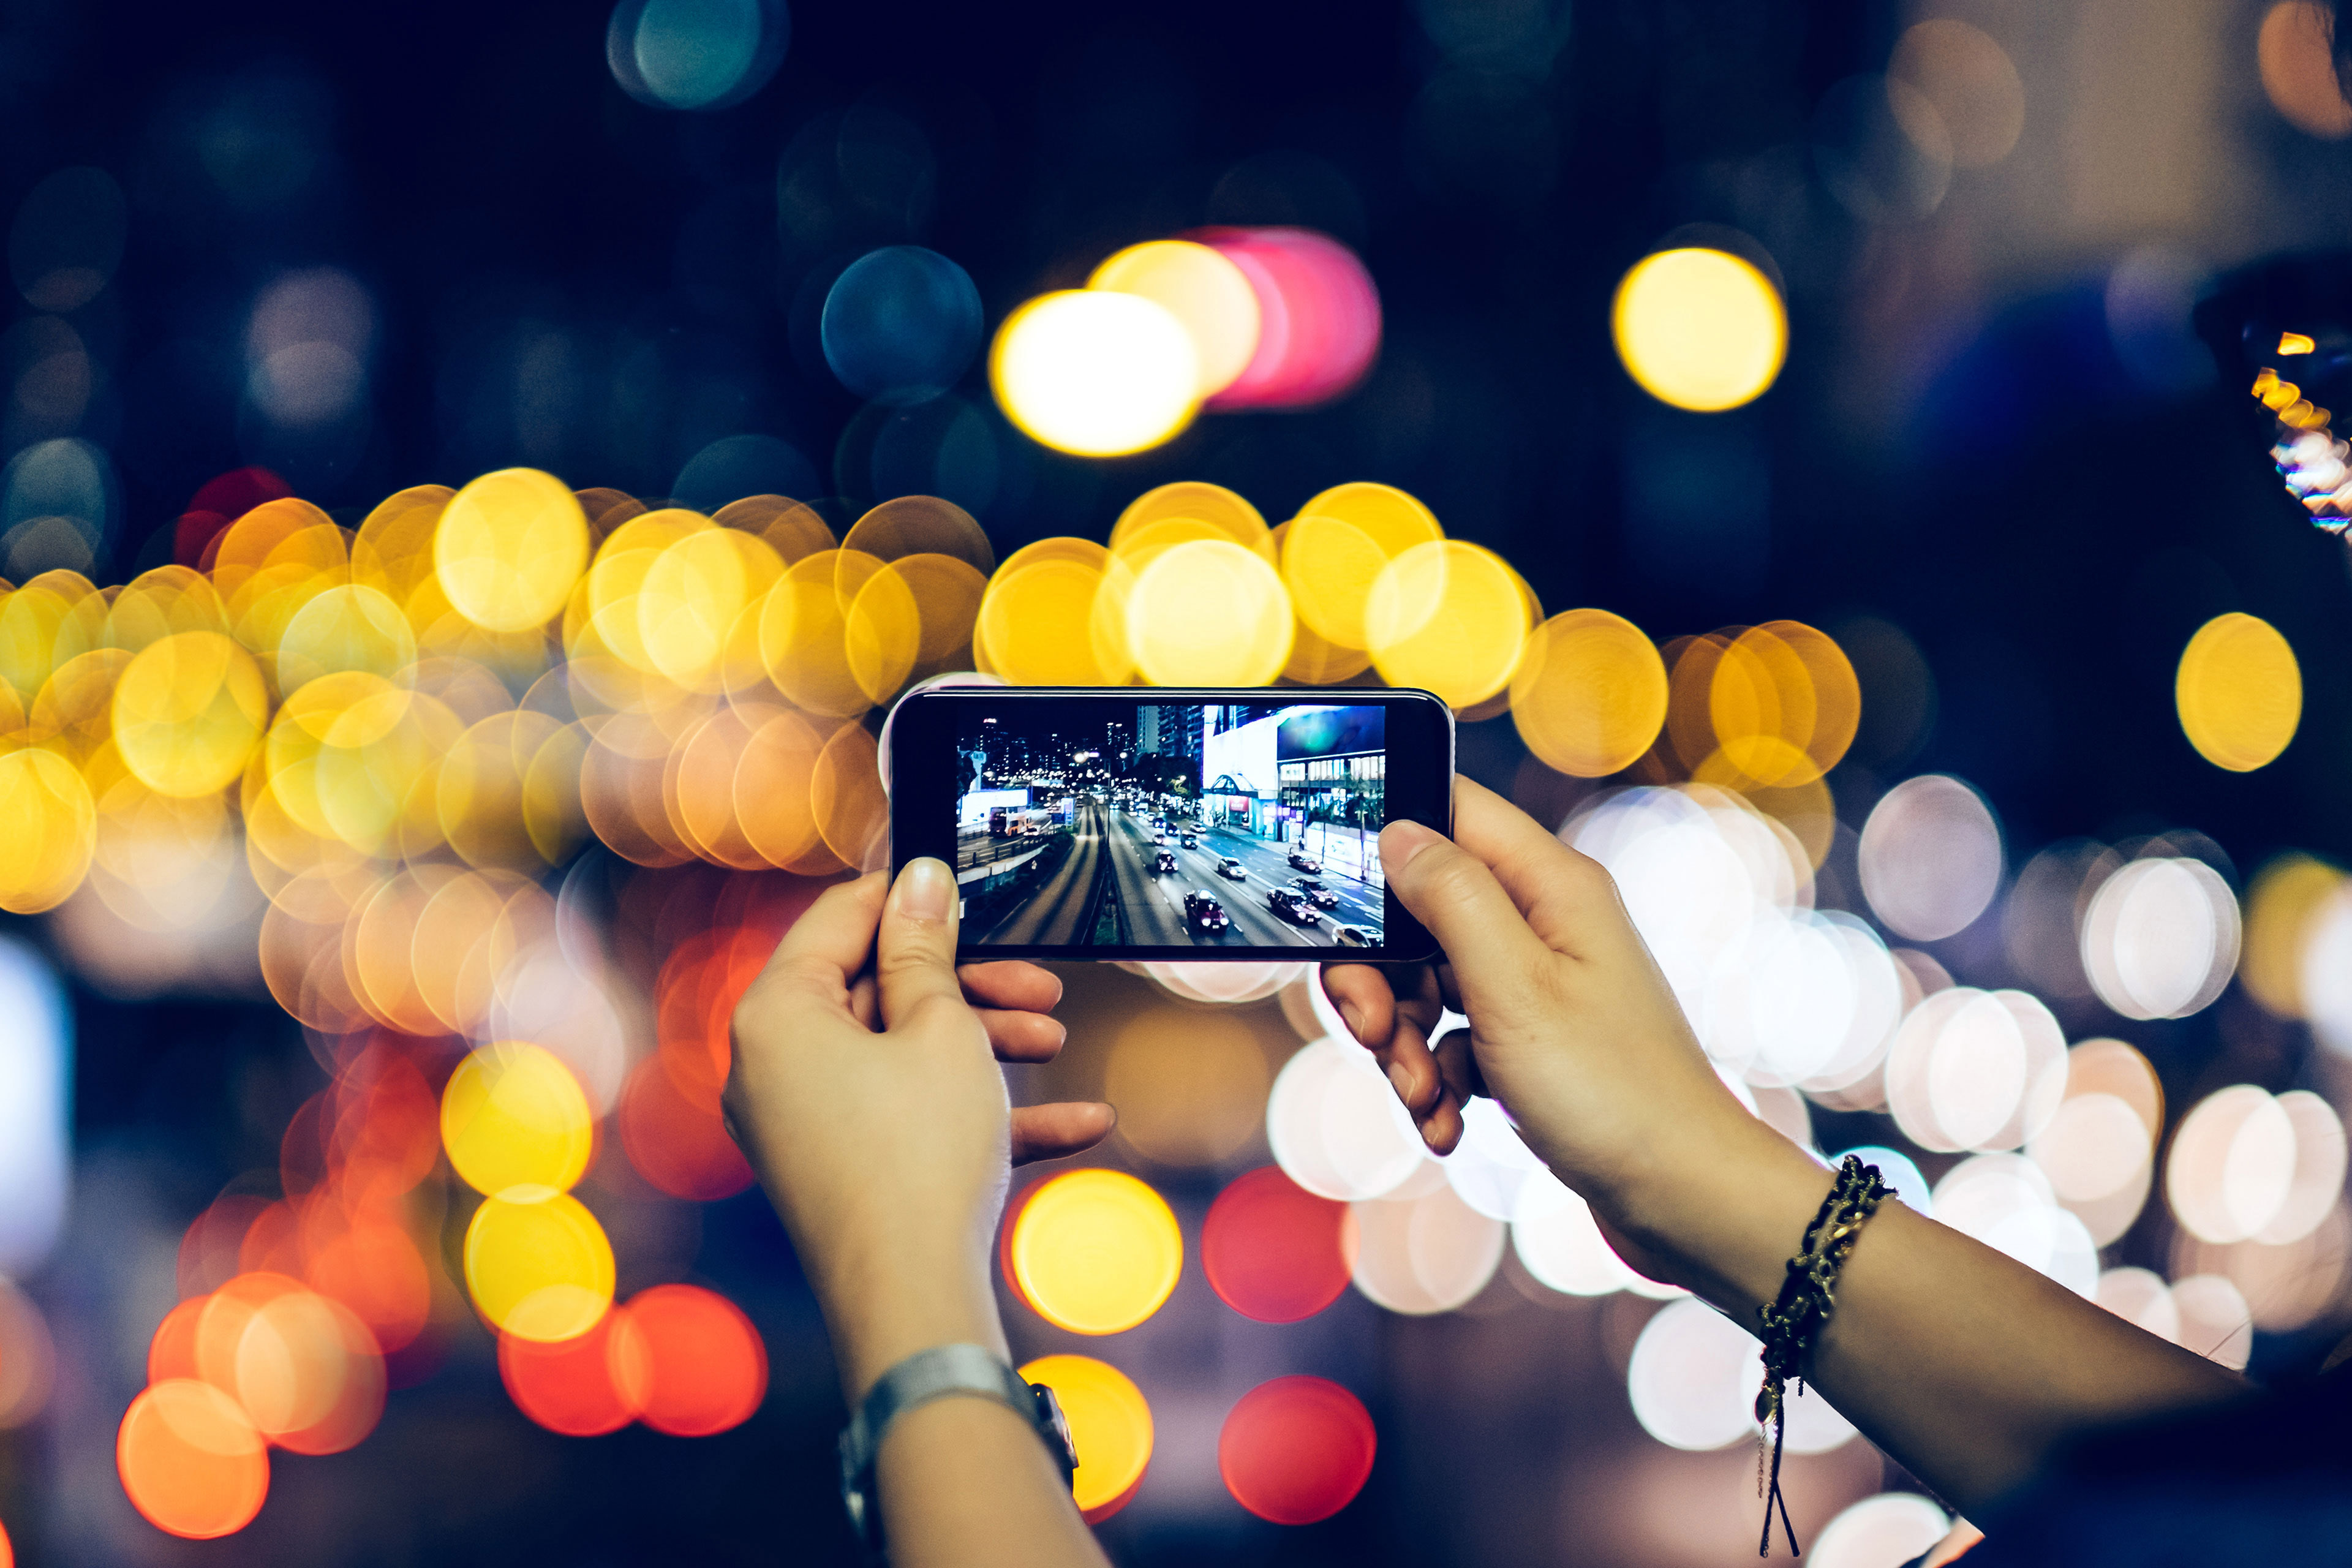 Woman photographing night scene with smartphone